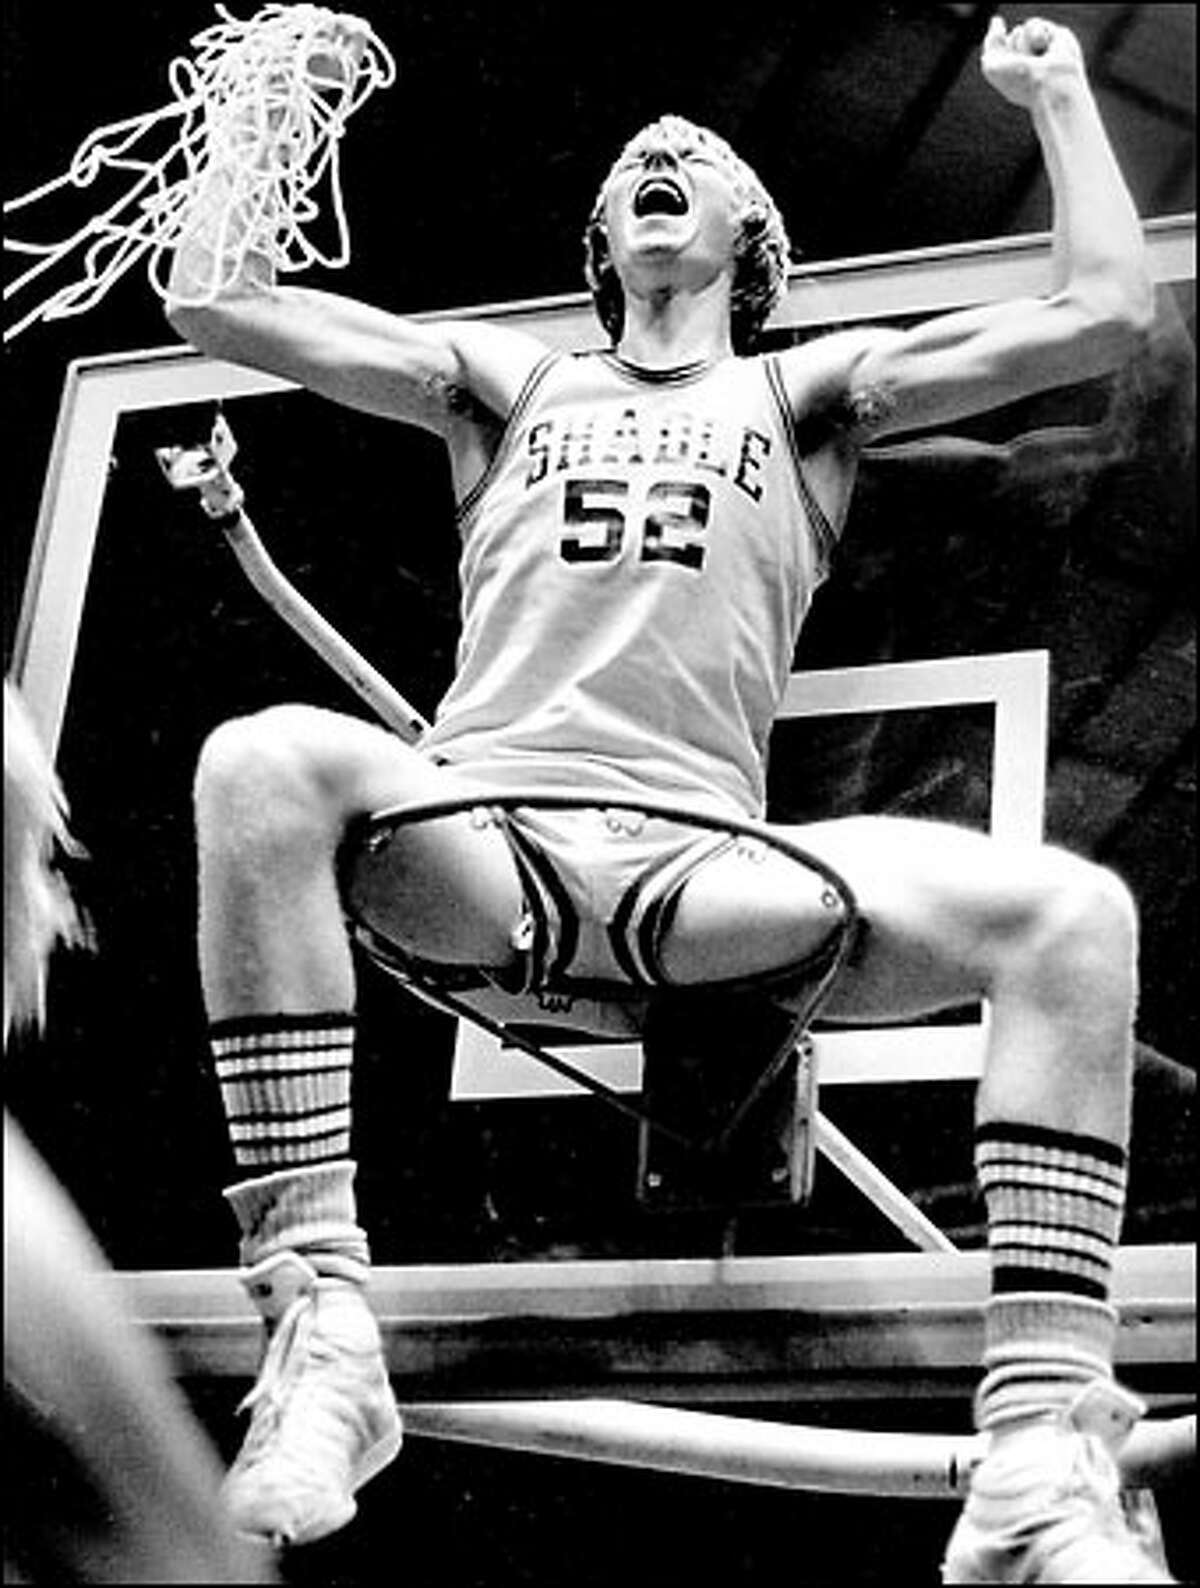 Shadle Park's Scott Poole celebrates his team's victory over Mercer Island in the 1981 boys Class 3A state championship game.